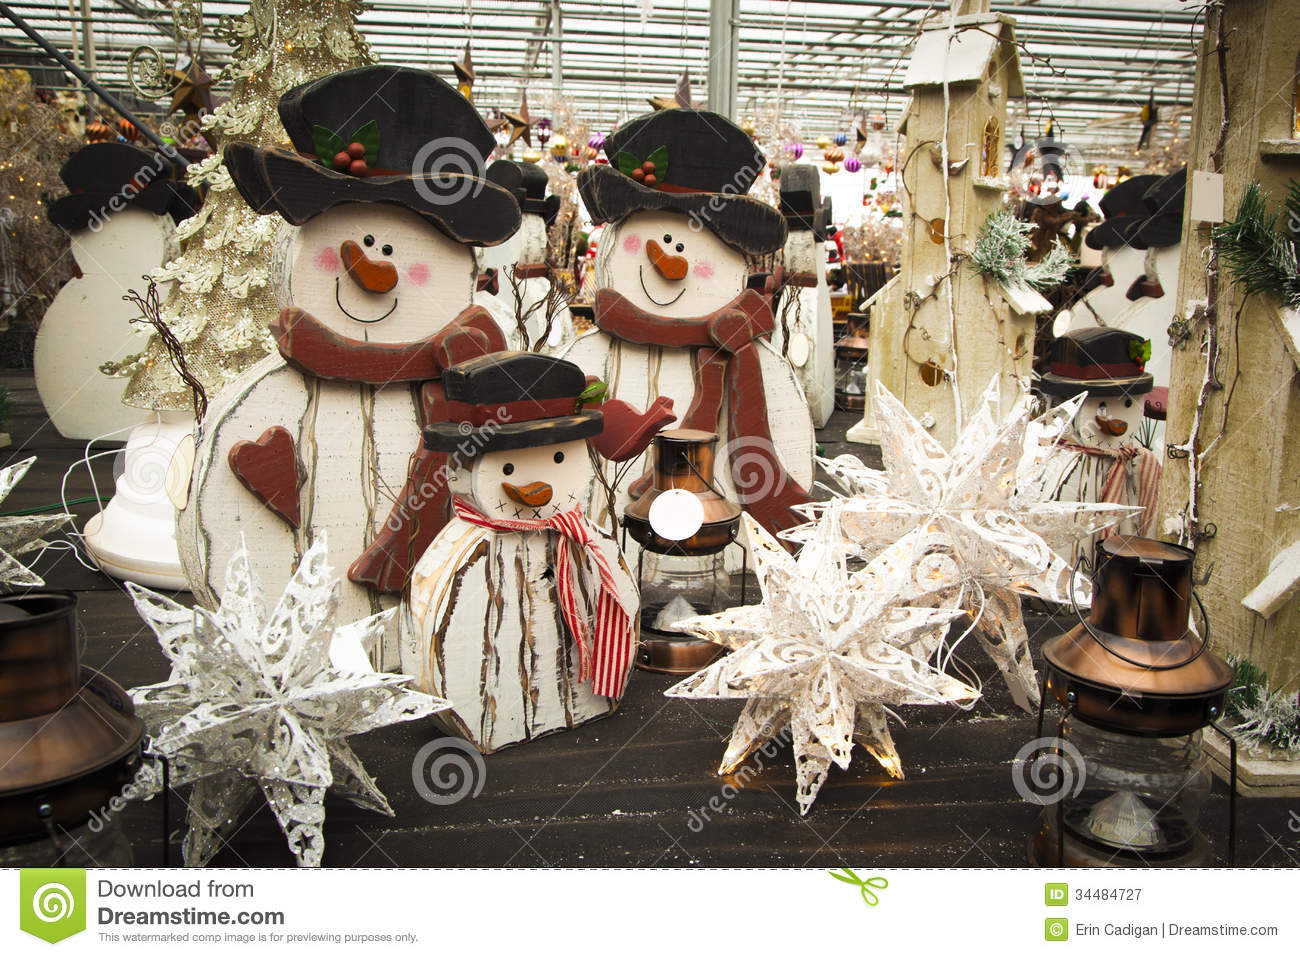 Christmas Decorations For Sale Royalty Free Stock